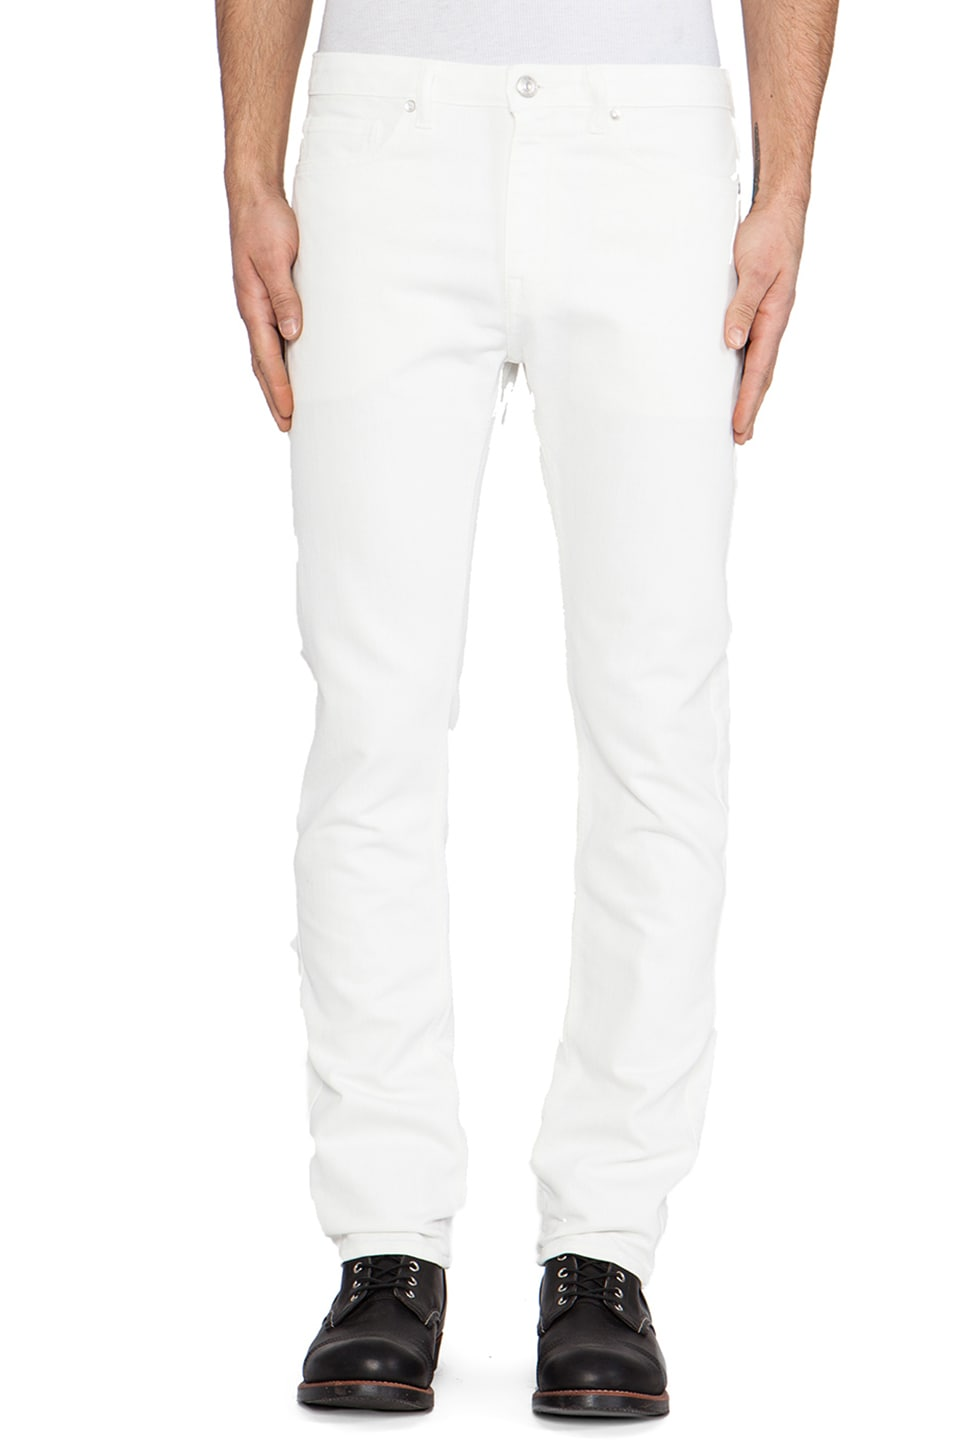 LEVI'S: Made & Crafted Tack Slim in White Wave